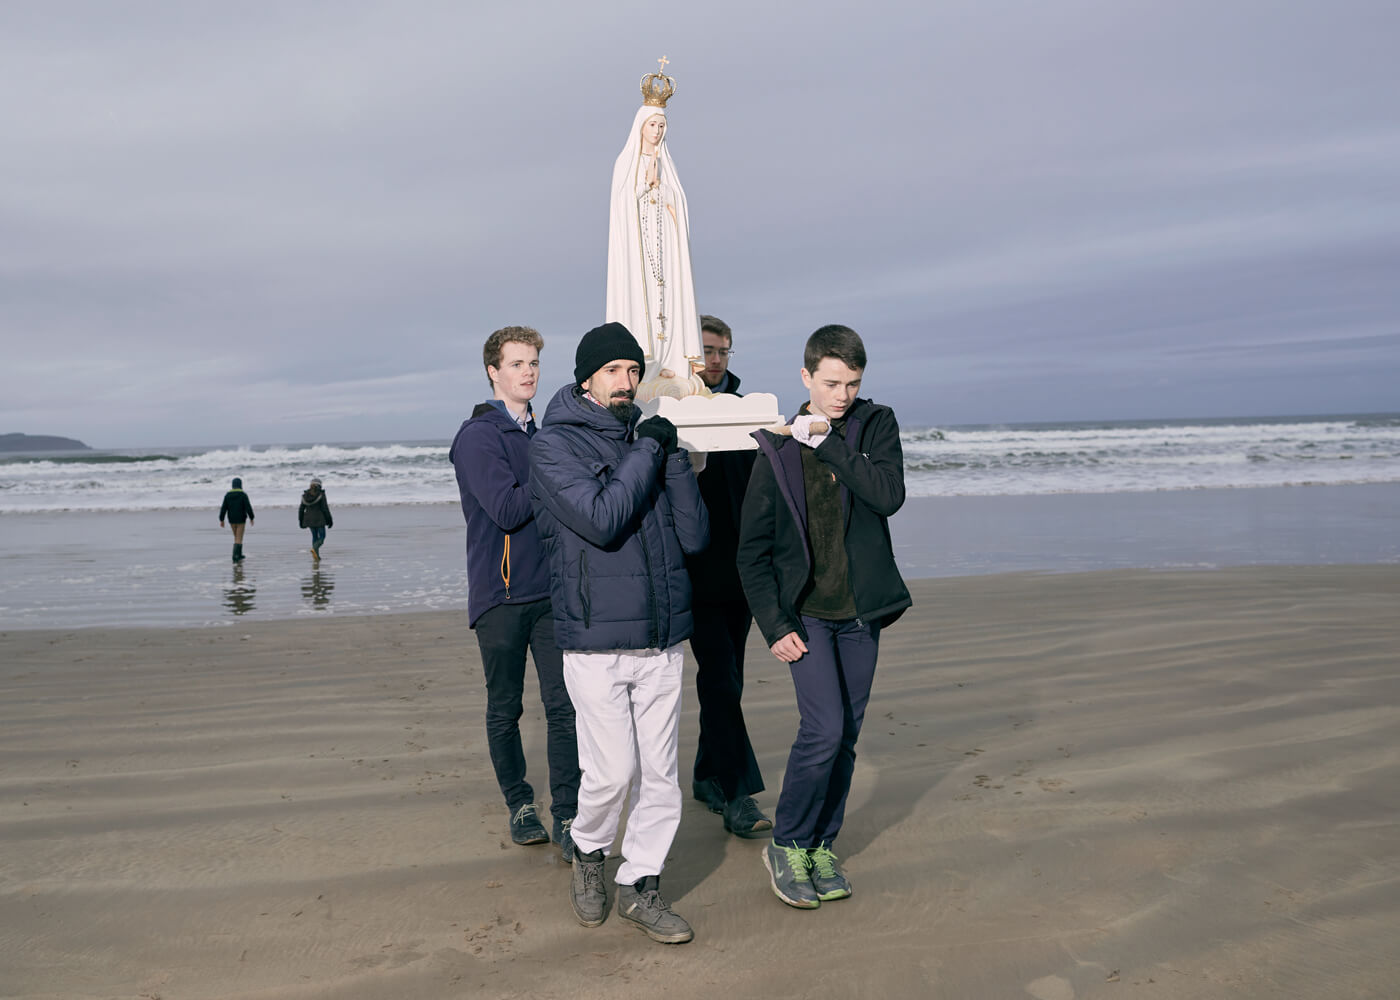 Coastal Rosary, Benone beach.  Catholic students carry a statue of Mary as part of a co-ordinated nationwide coastal rosary prayer to stop the evil of abortion coming onto Irish shores.